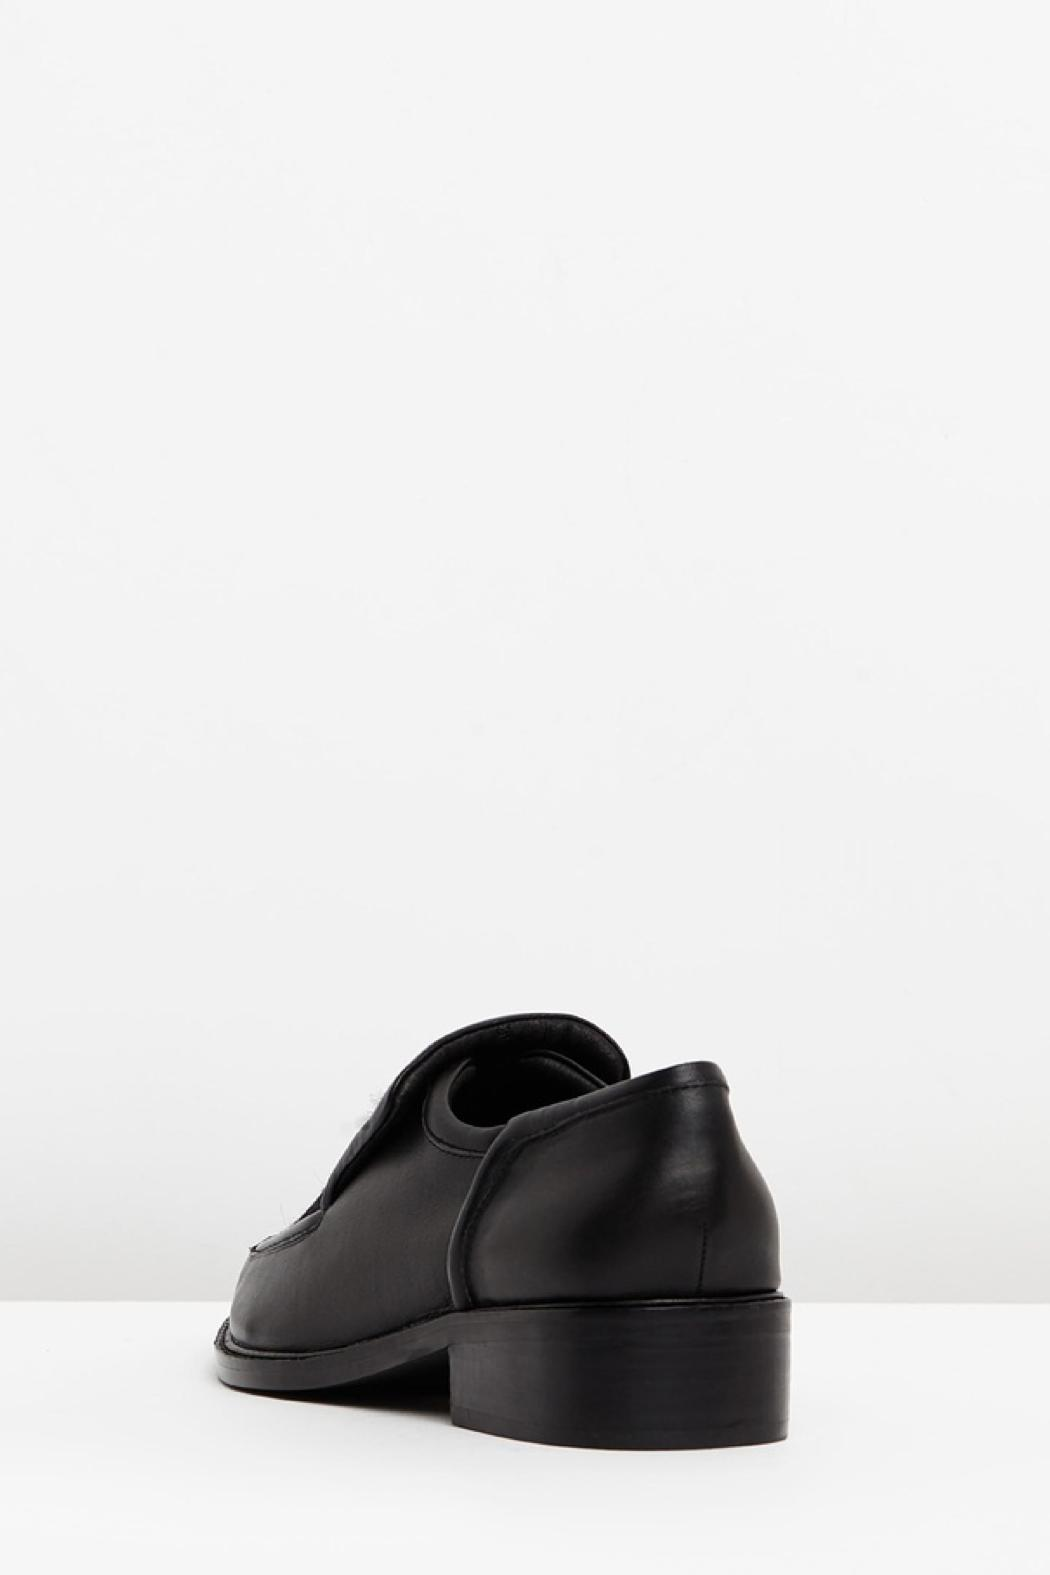 SOLSANA Pierced Leather Loafer - Front Full Image